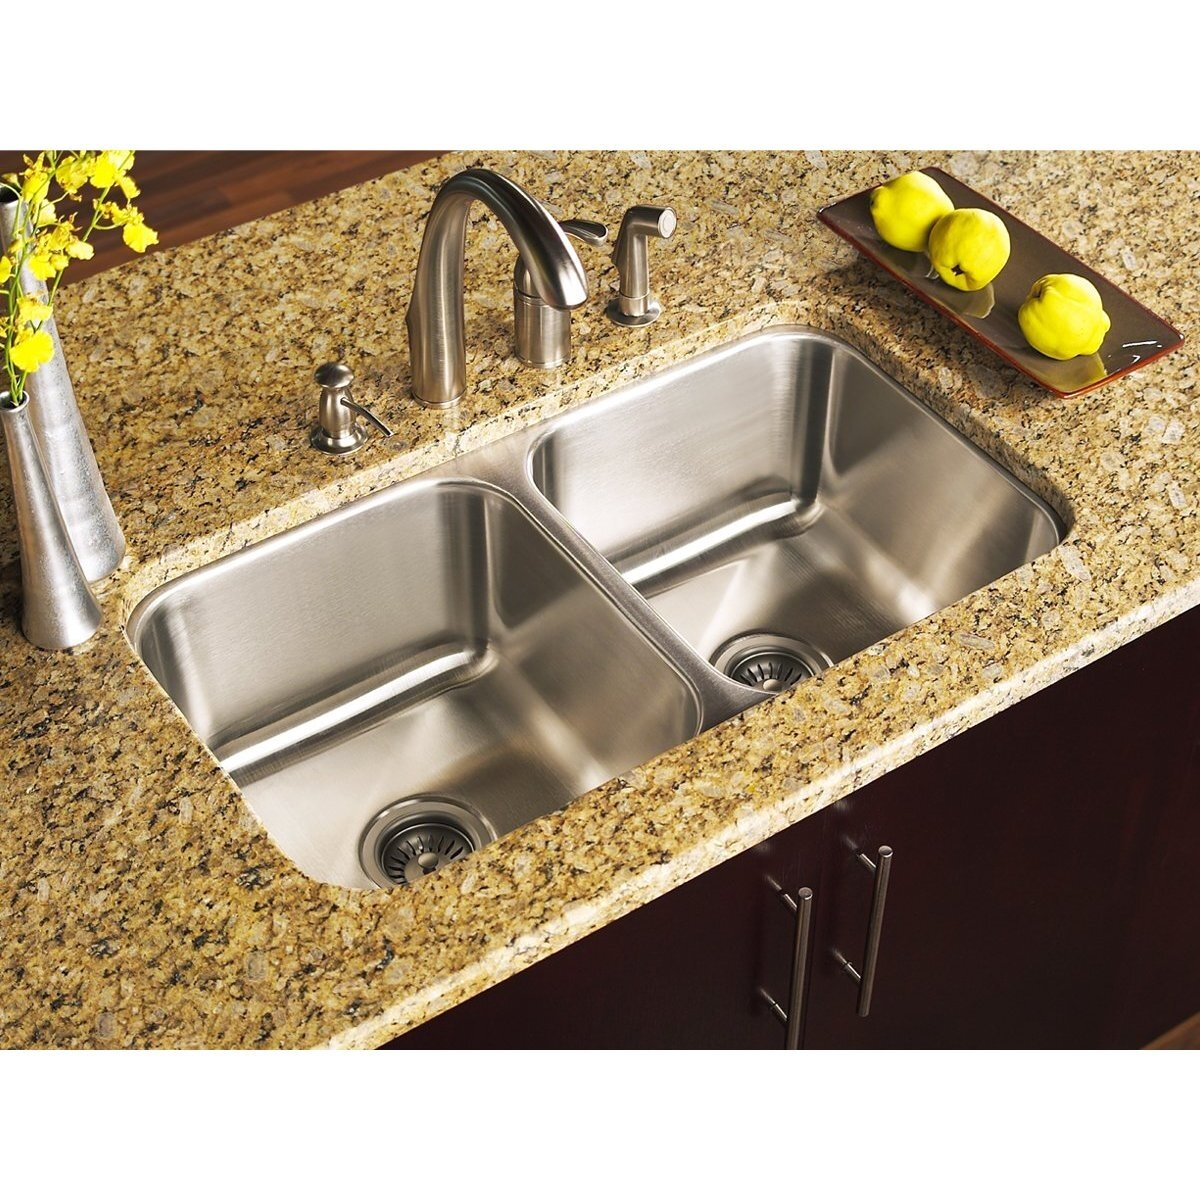 Kitchen Sinks Stainless Steel | Stainless Steel Kitchen Sinks Reviews | Ss Sinks Kitchen